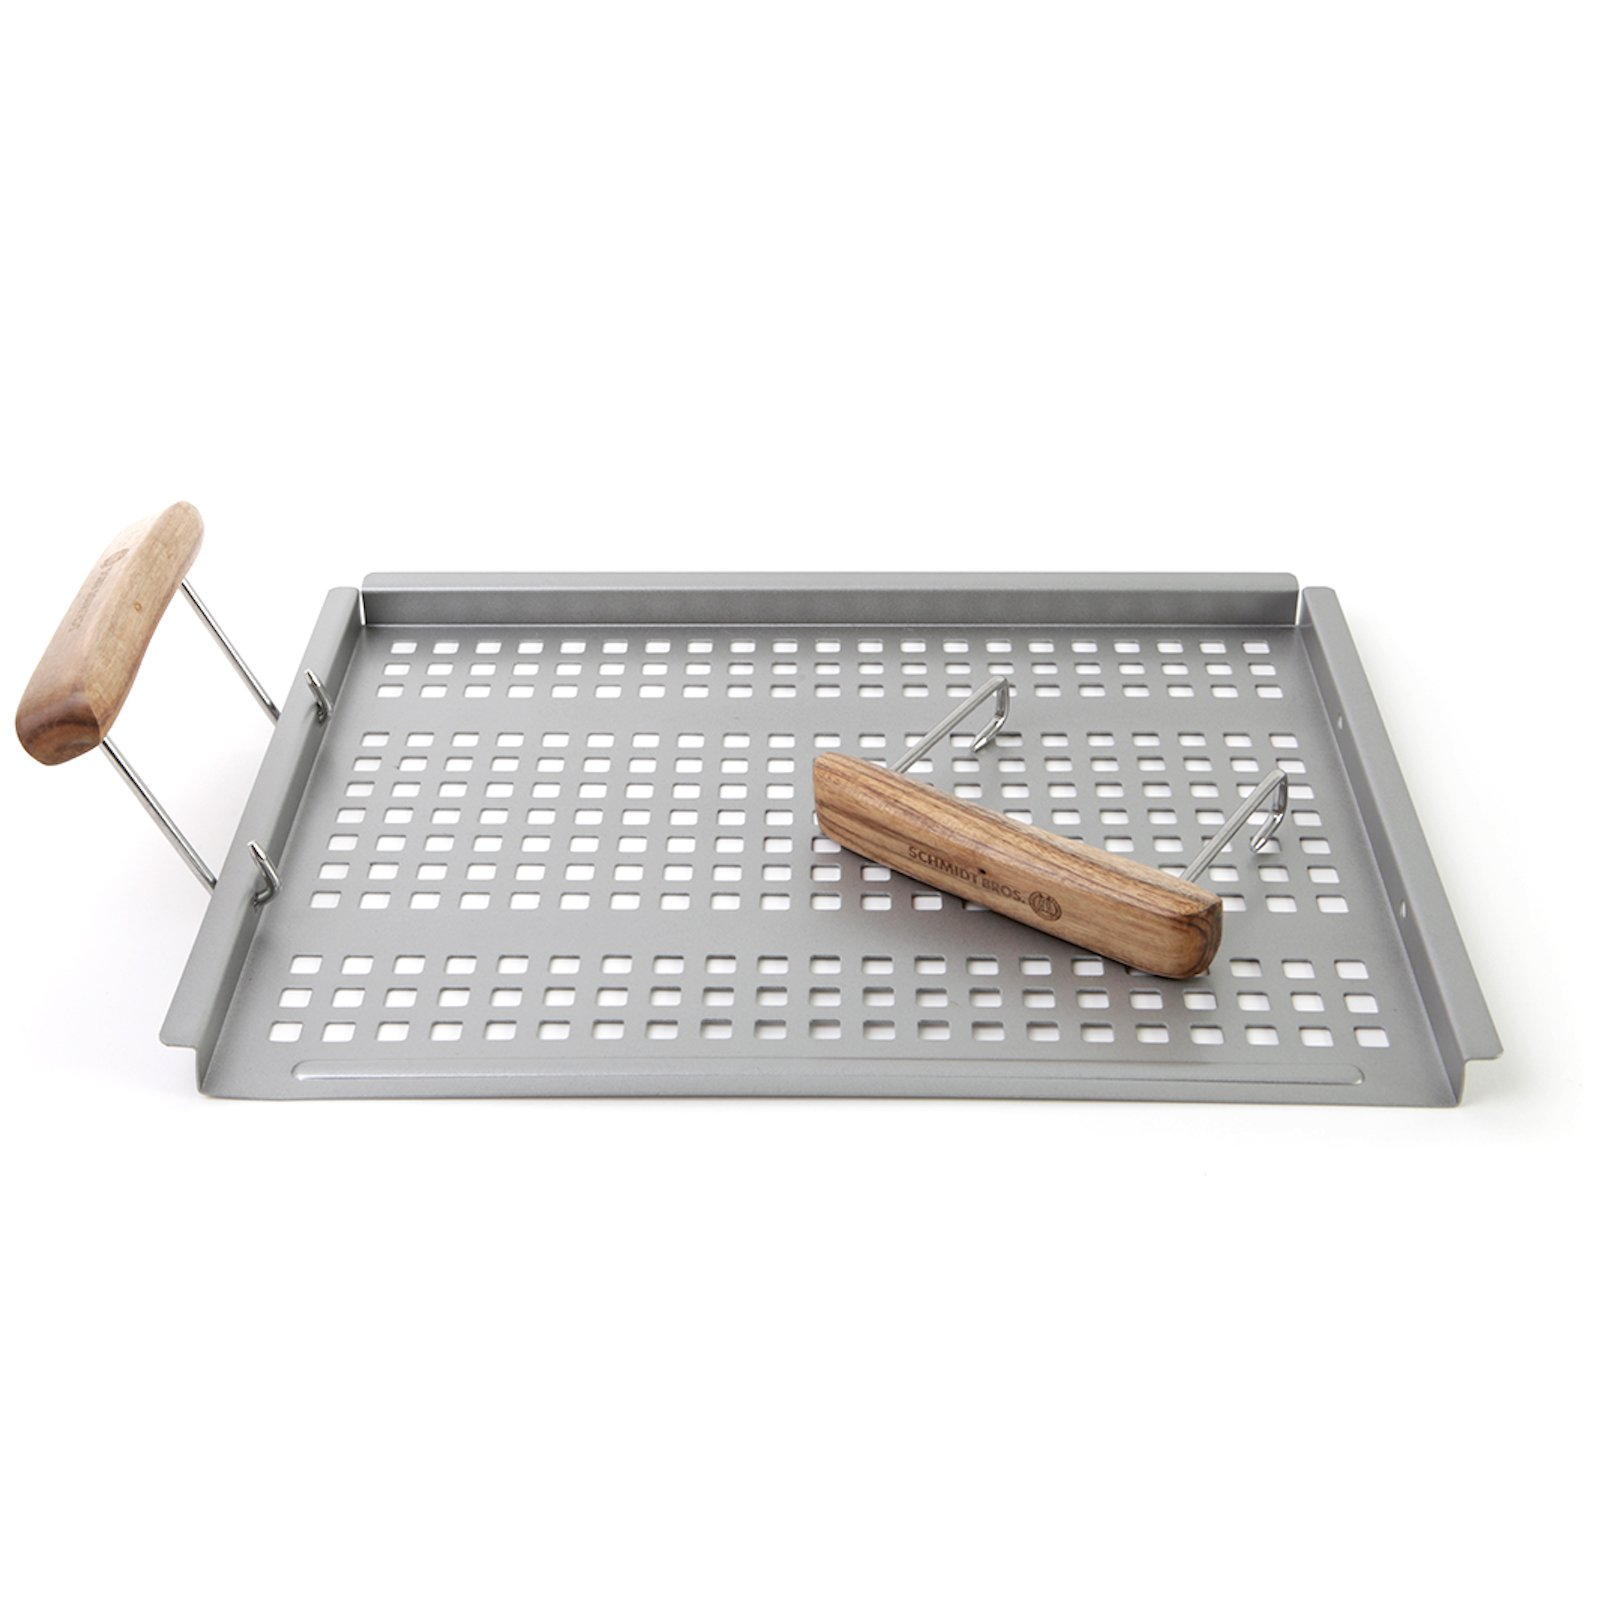 Schmidt Brothers BBQ Stainless Steel Grab & Grill Flat Grill Tray